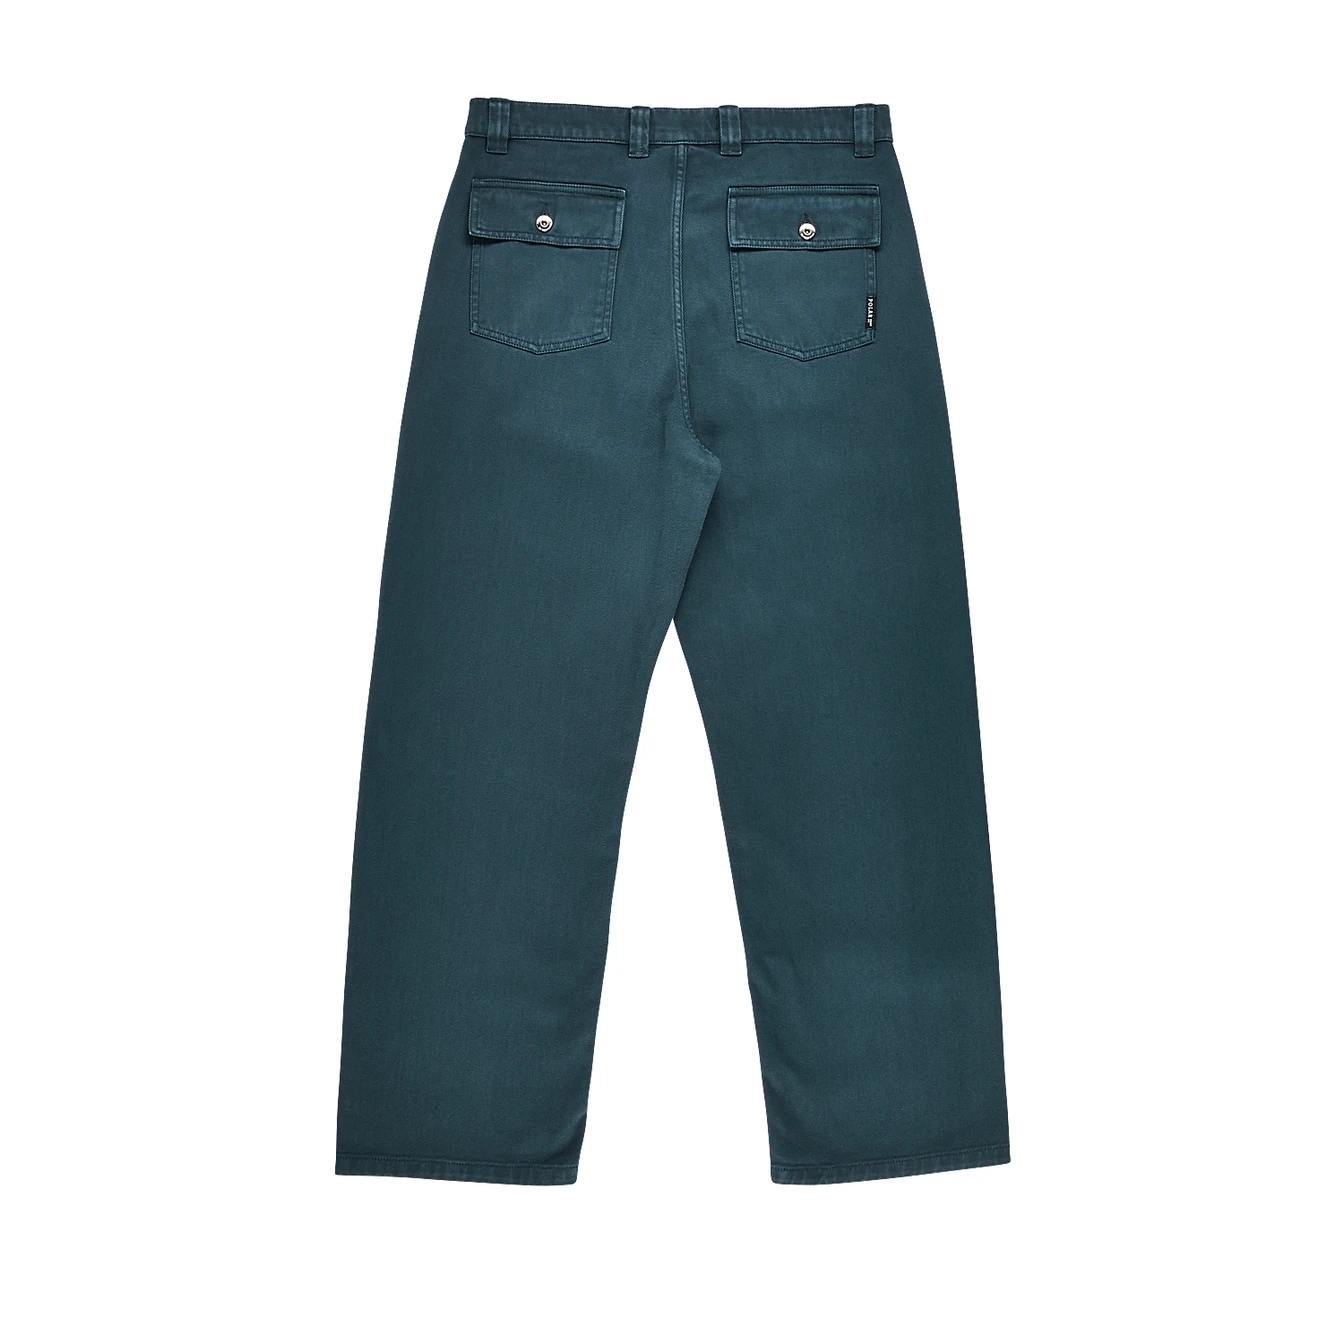 Polar Skate Co. 40's Pants Grey Teal